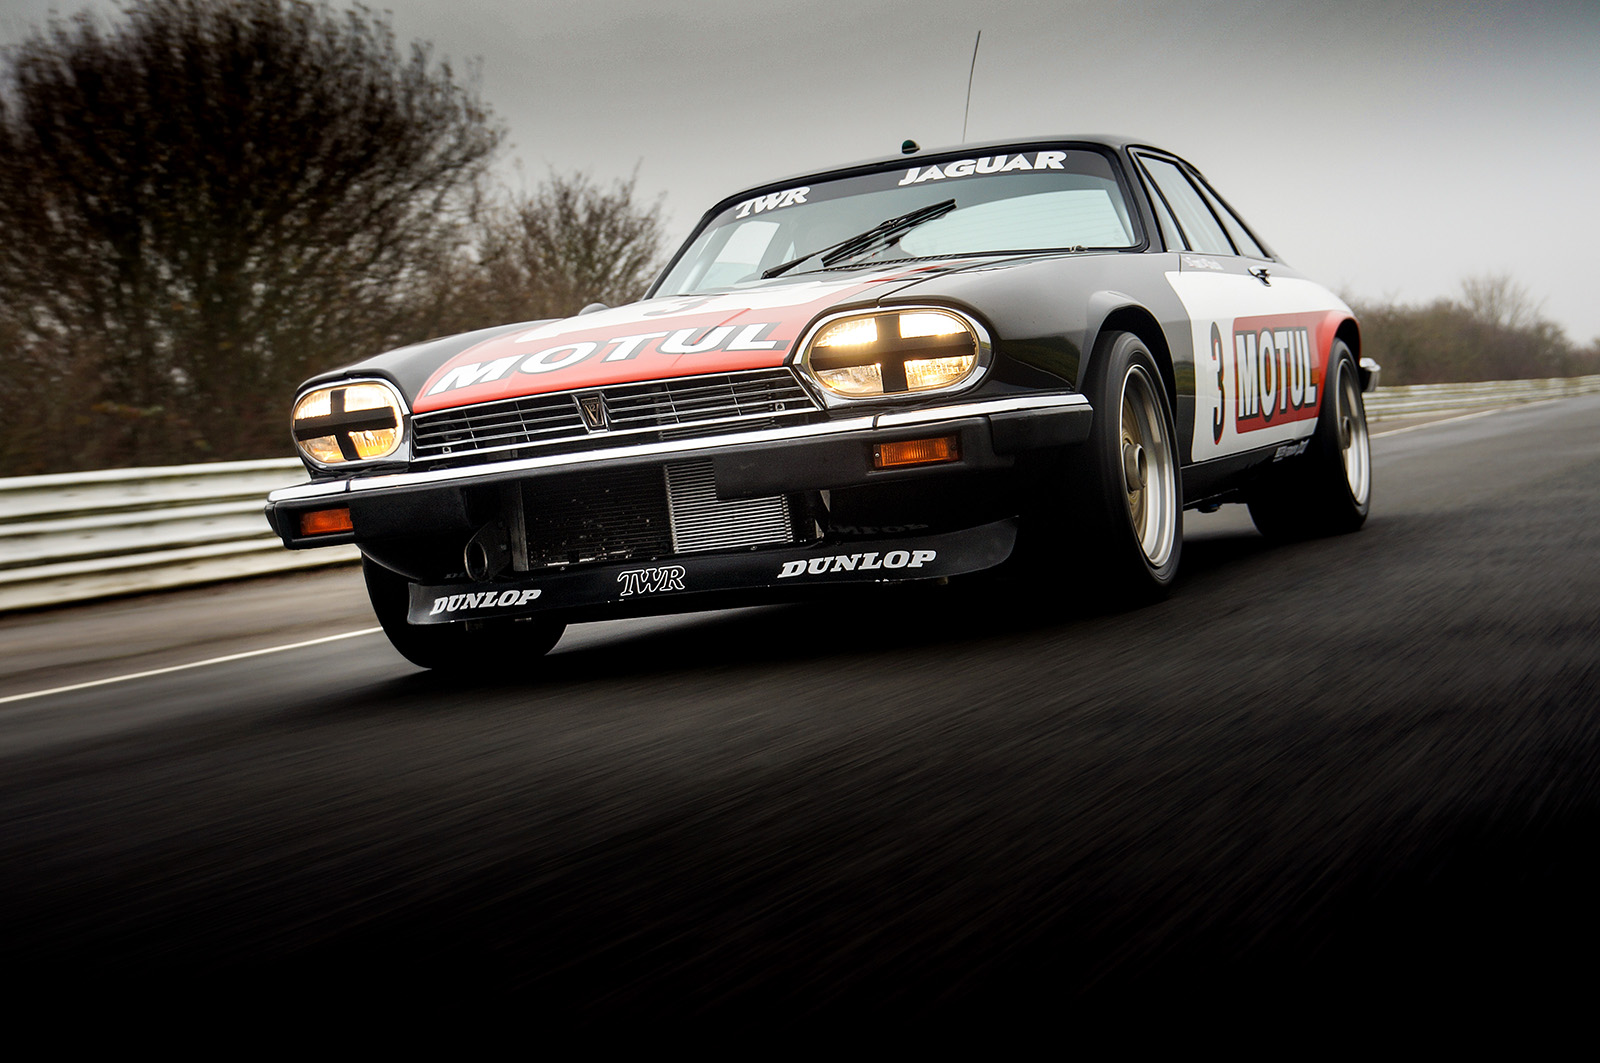 jaguar_twr_xjs_walkinshaw_wilkinson_sayer_selection_scragg_blyton_circuit_1.jpg